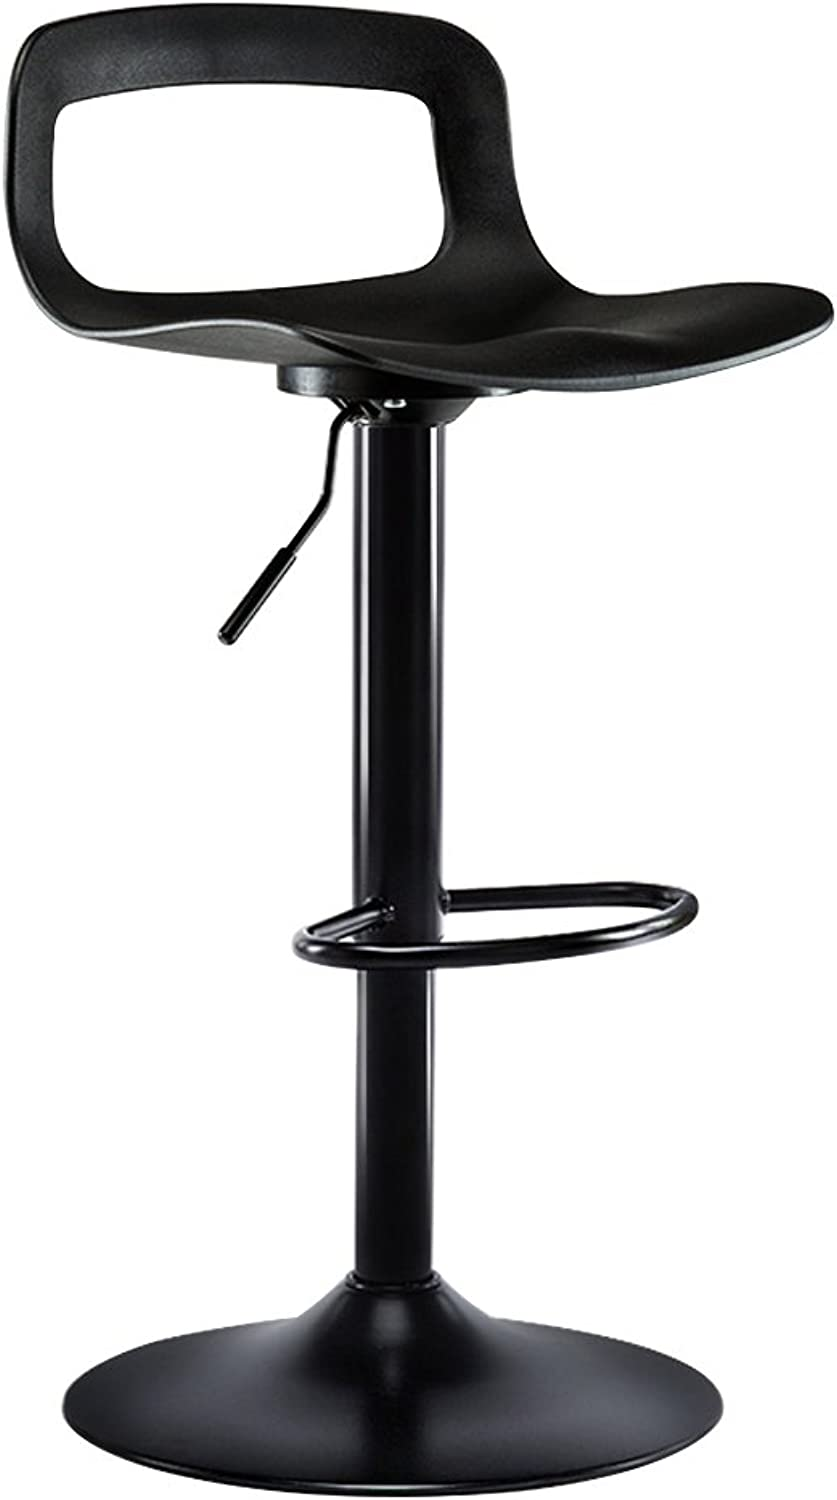 DQMSB High Stool Bar Chair Home Back Bar Stool Lift Swivel Chair (color   Black, Size   41CM)